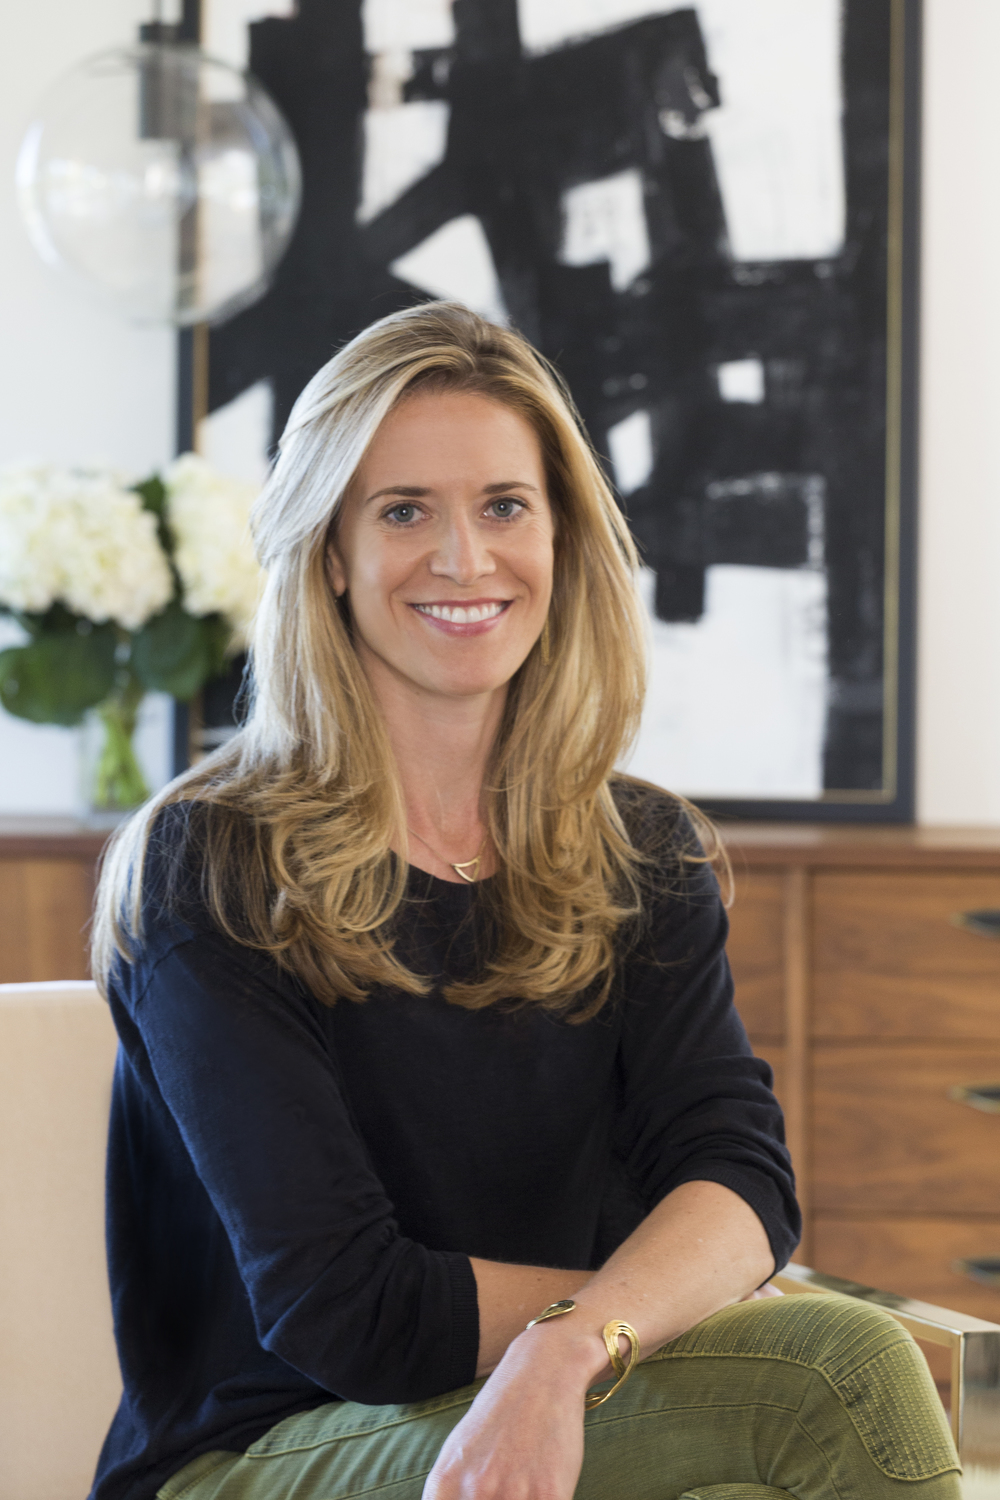 bLYE fAUST, PRODUCER OF OSCAR NOMINATED FILM 'SPOTLIGHT' AND OWNER OF byblye interiors